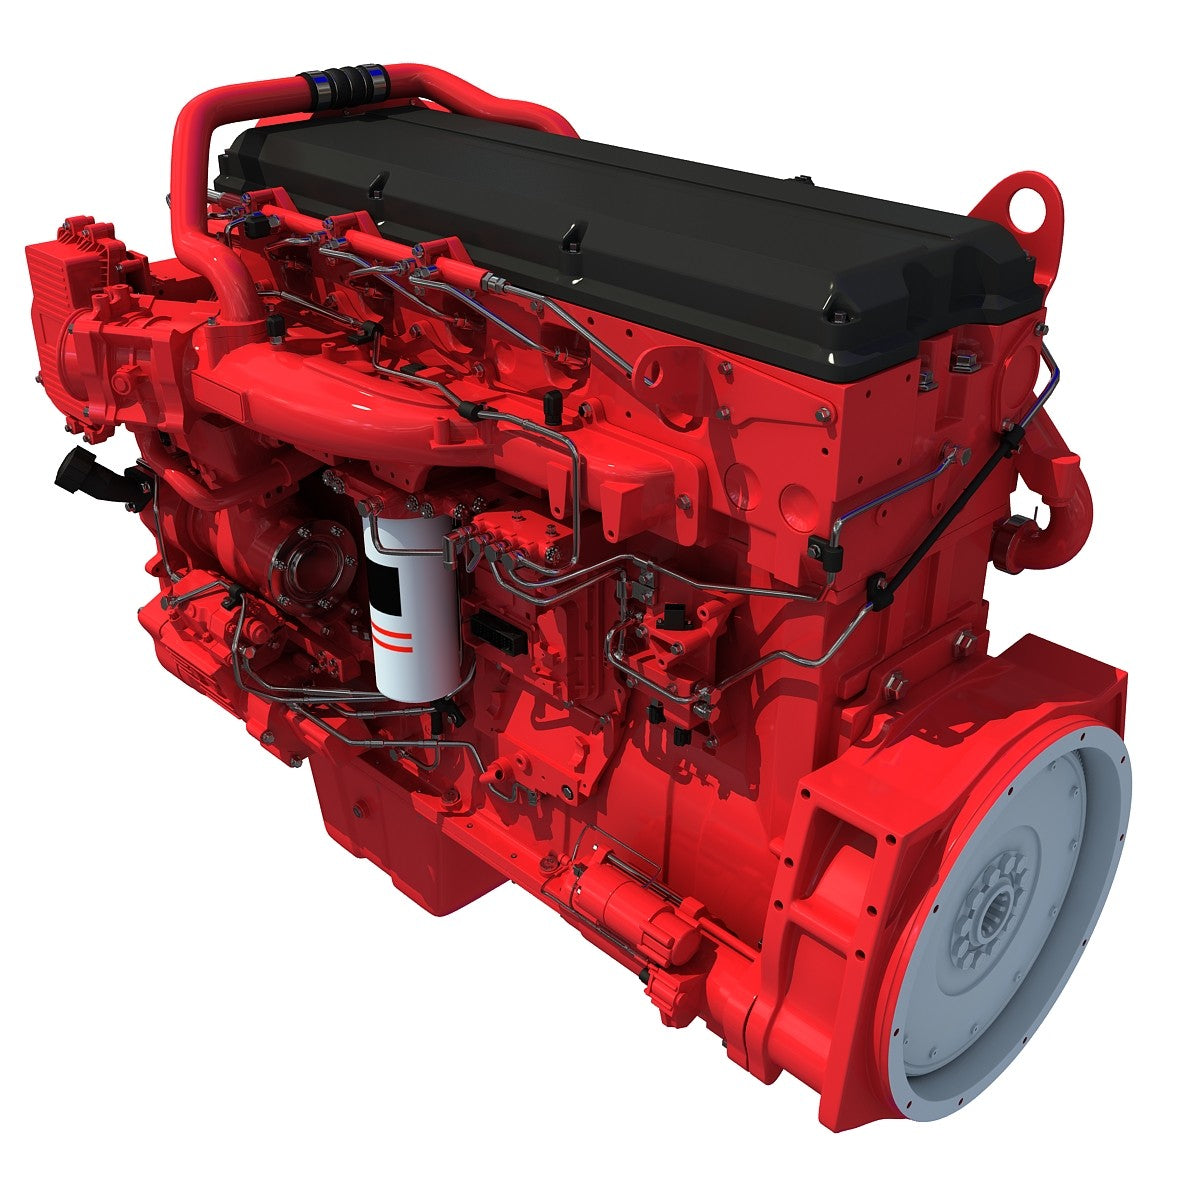 Cummins 3D Engine Models